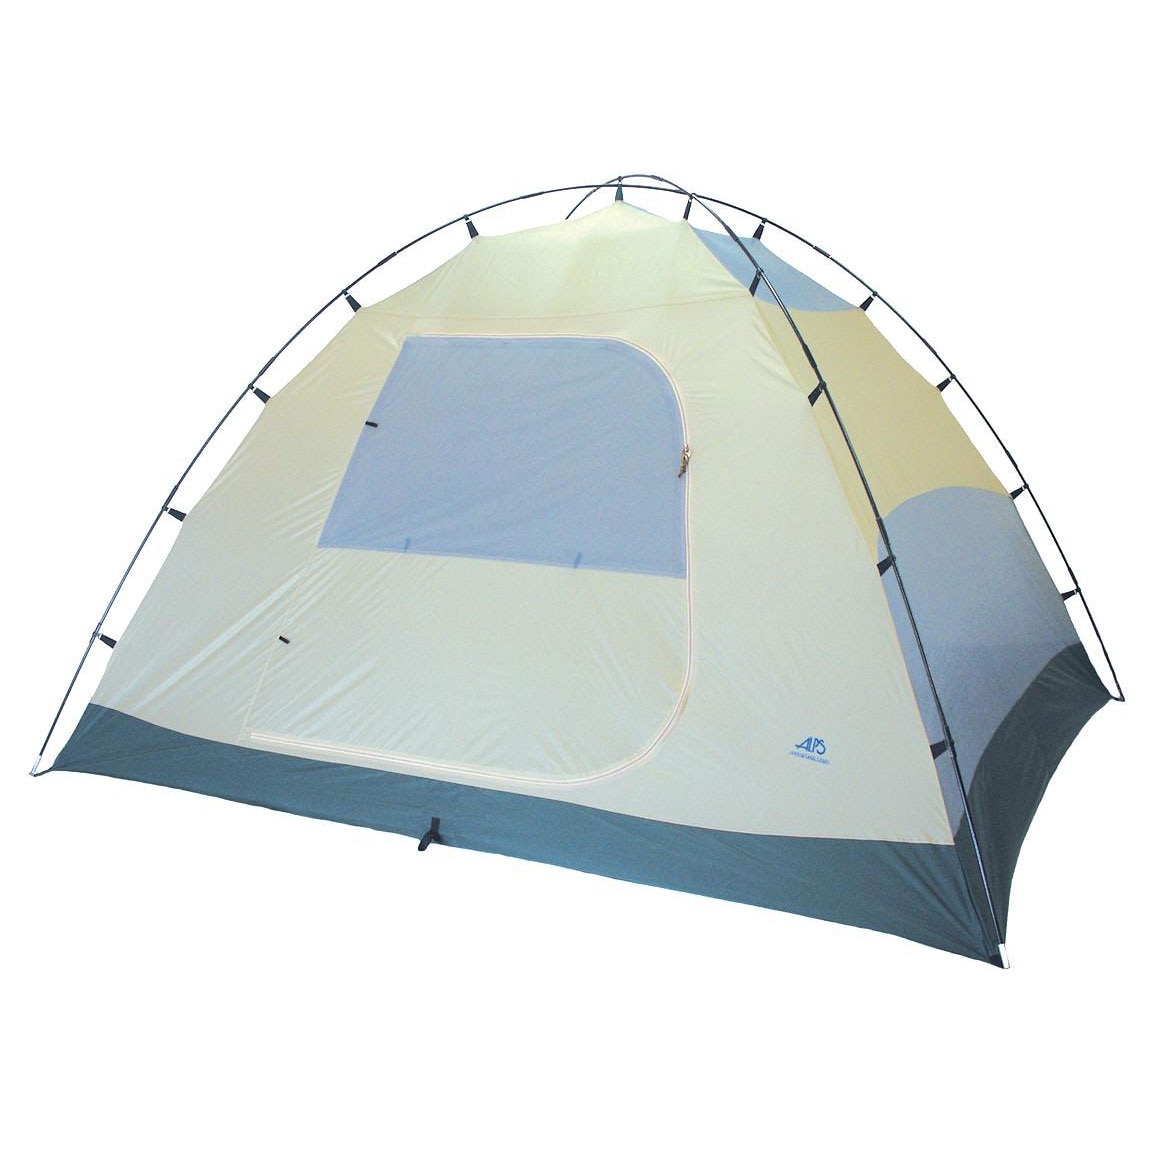 ALPS Mountaineering Meramac 4 AL 4-person Outfitter Tent